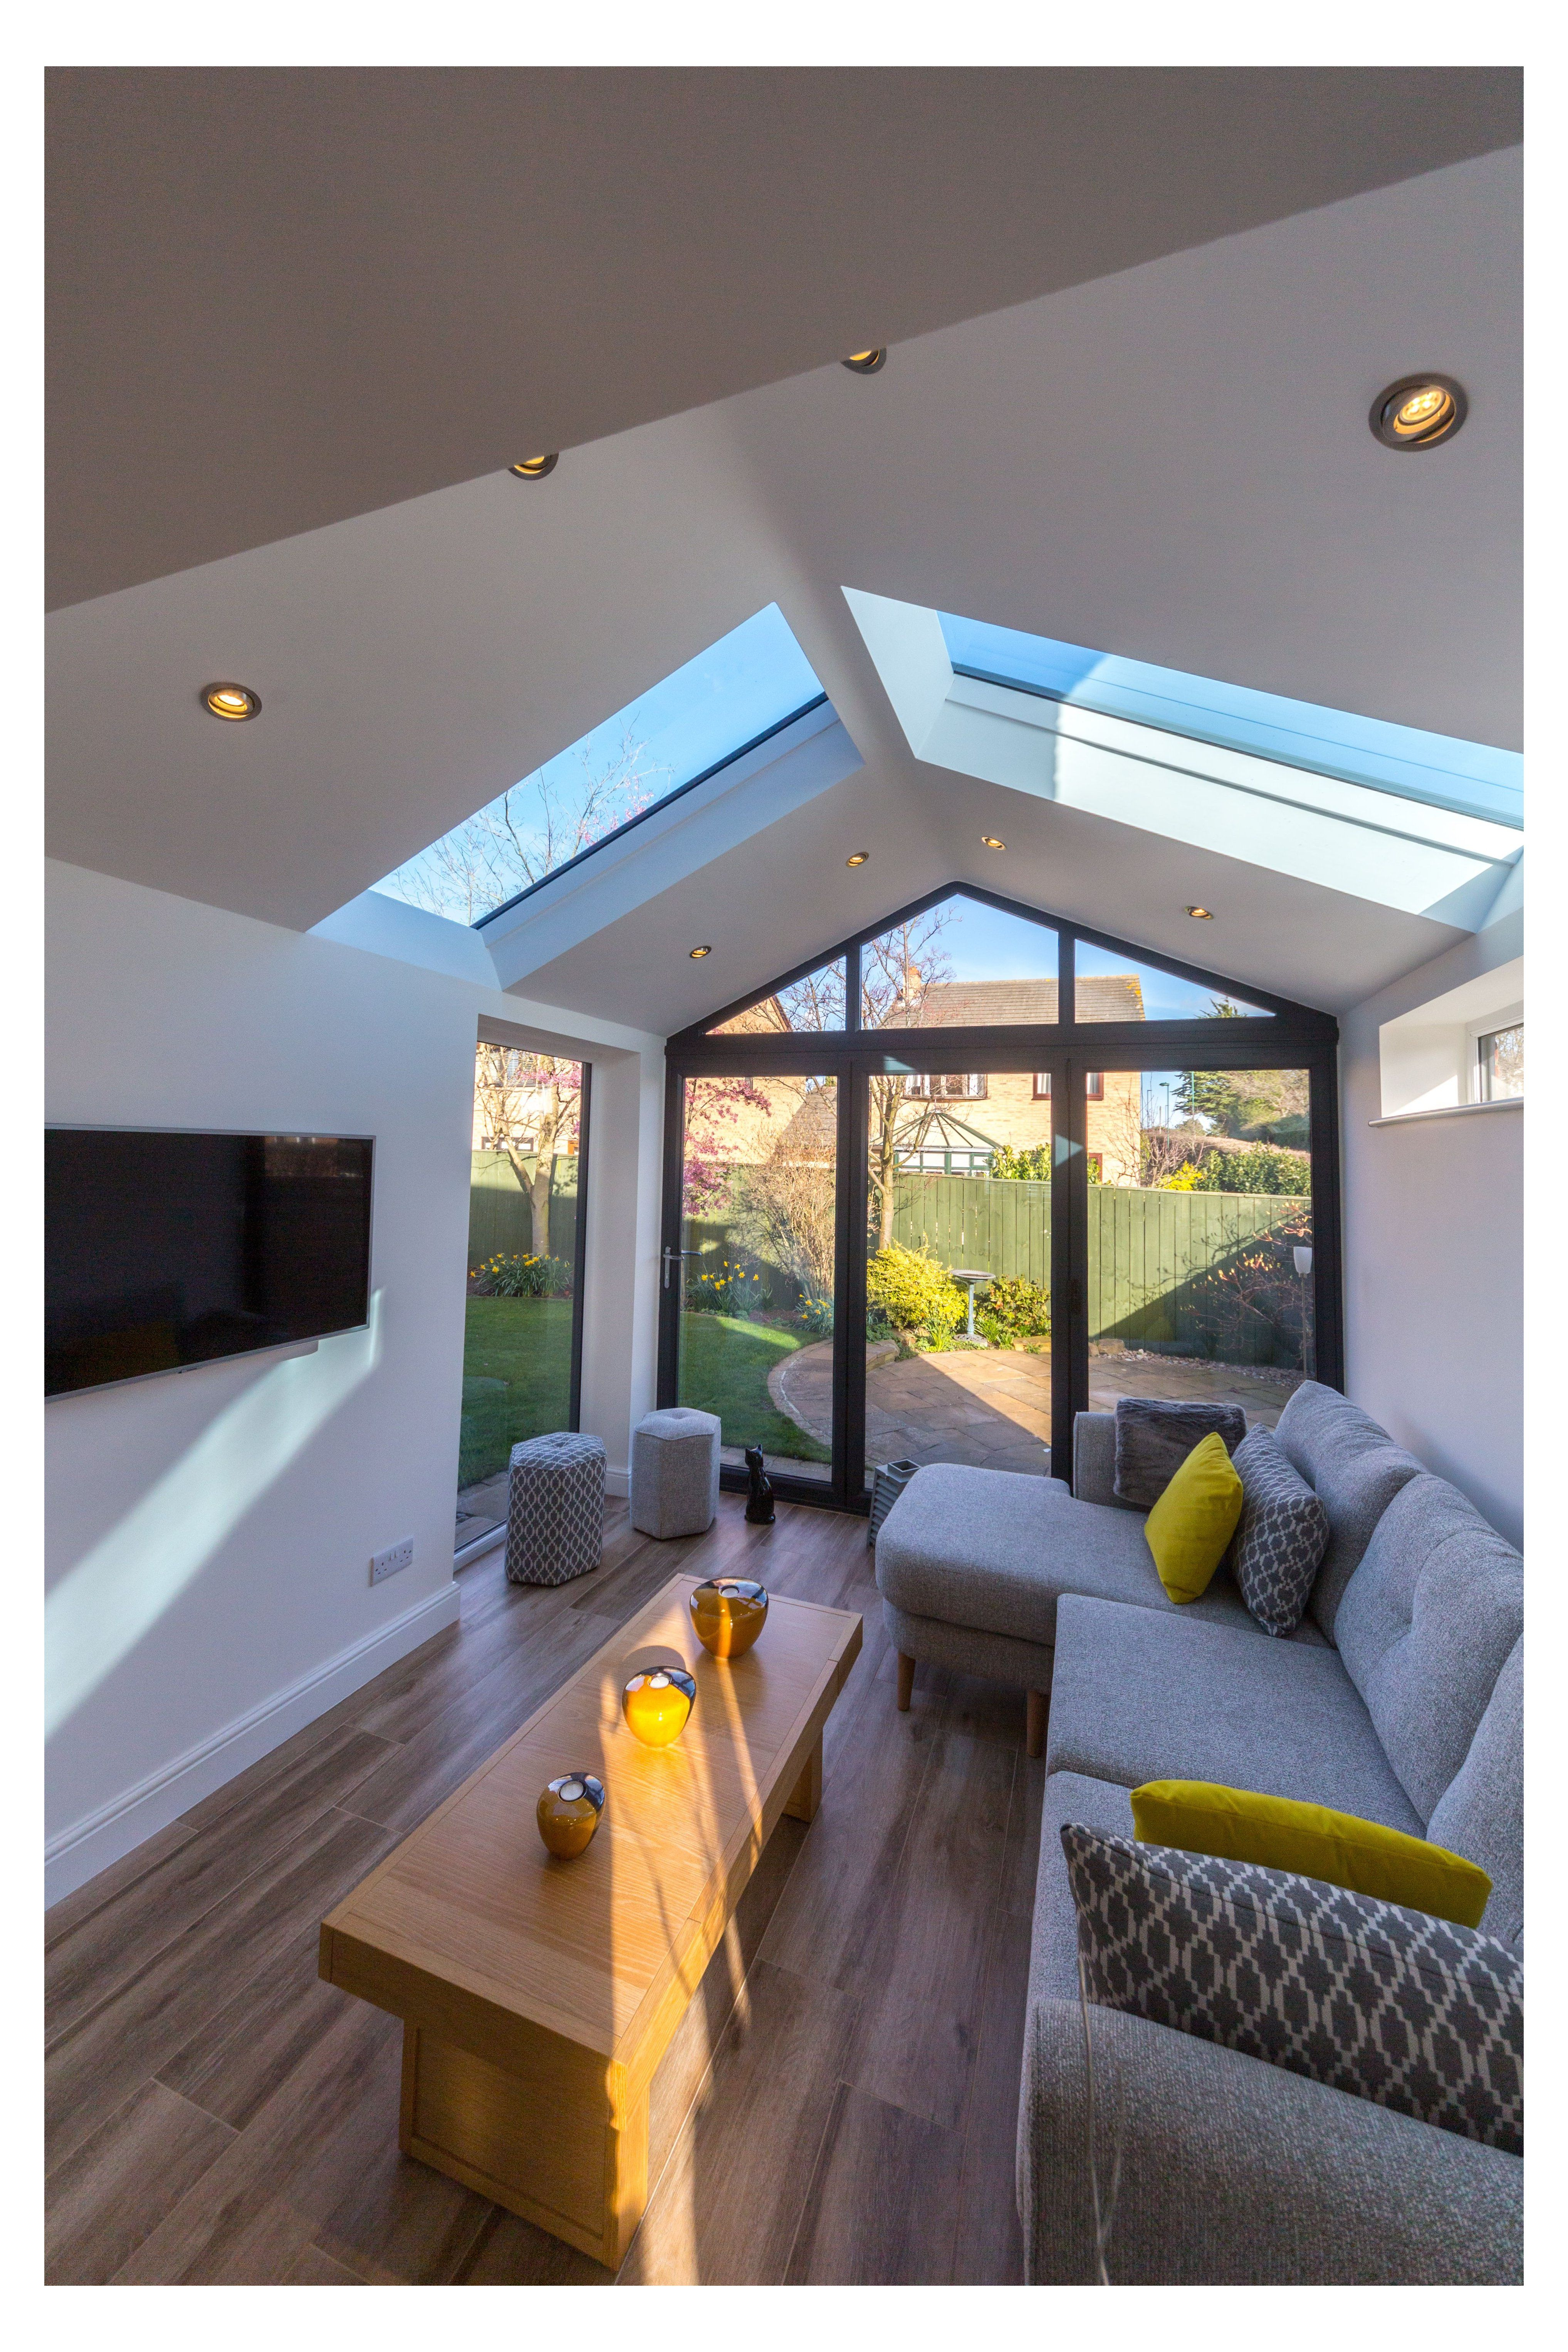 Tiled Conservatory Roofs Clitheroe Glass Roof Structure Read More About Our Ultraroof T In 2020 House Extension Design Tiled Conservatory Roof House Extension Plans